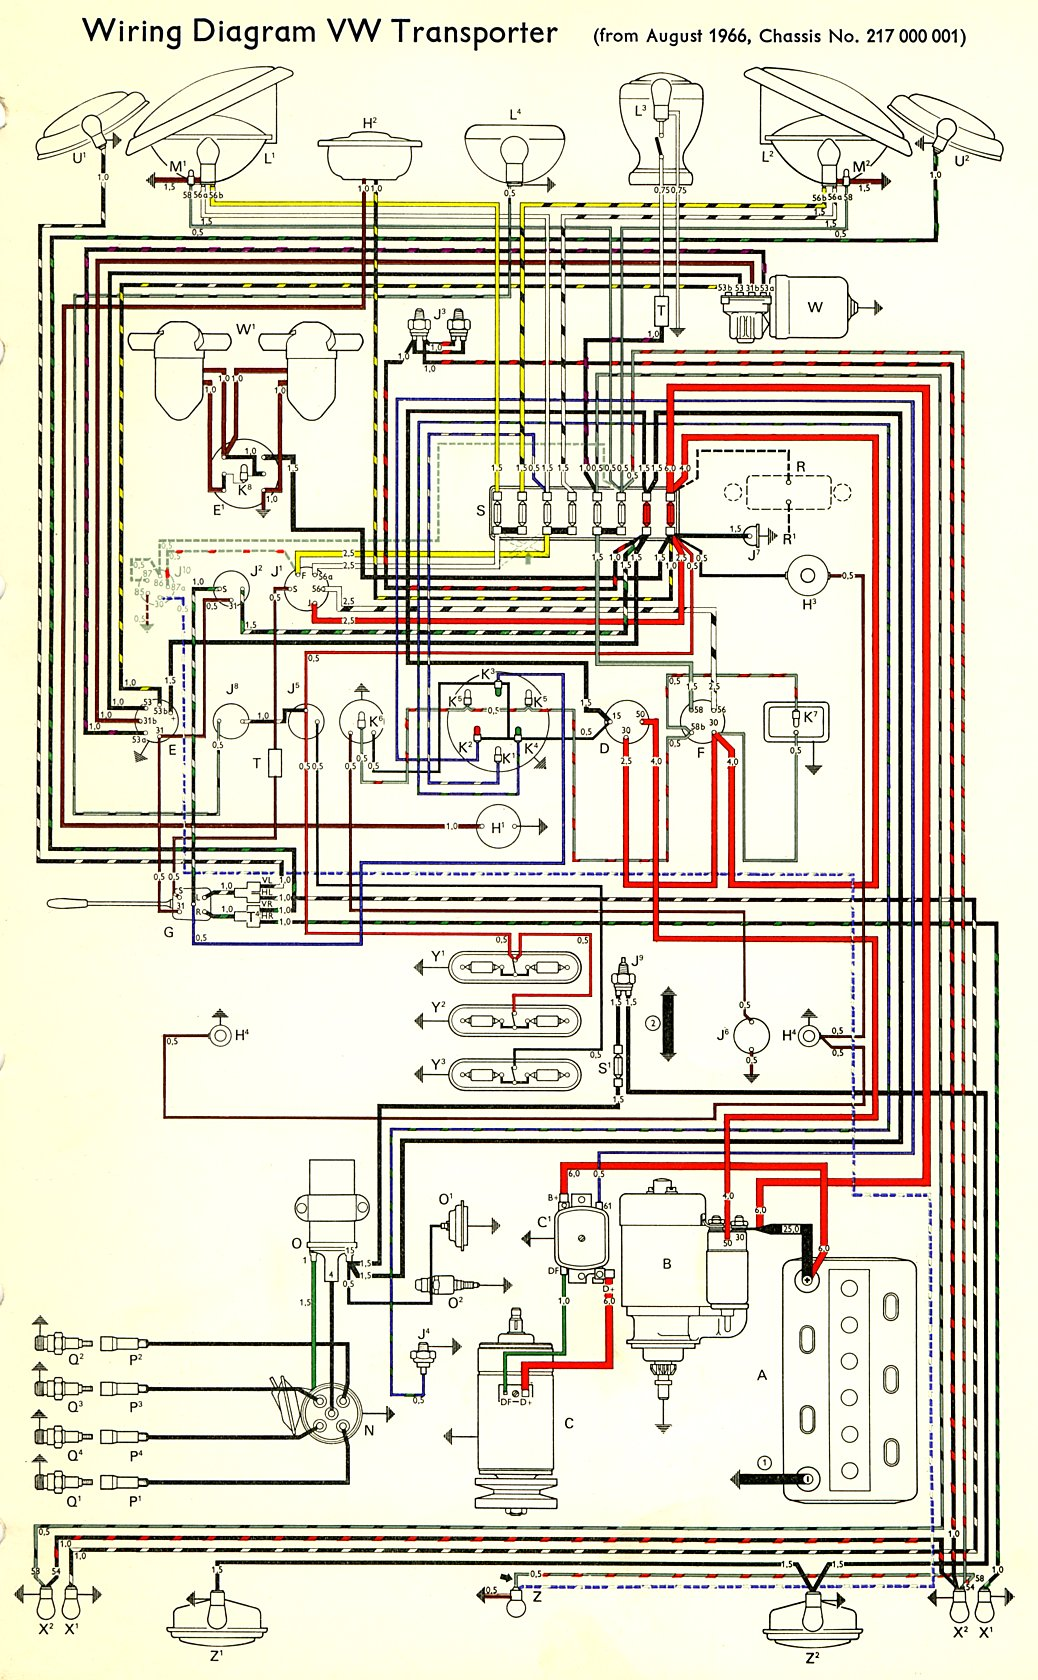 bus_67 1967 bus wiring diagram thegoldenbug com Volkswagen Type 2 Wiring Harness at crackthecode.co